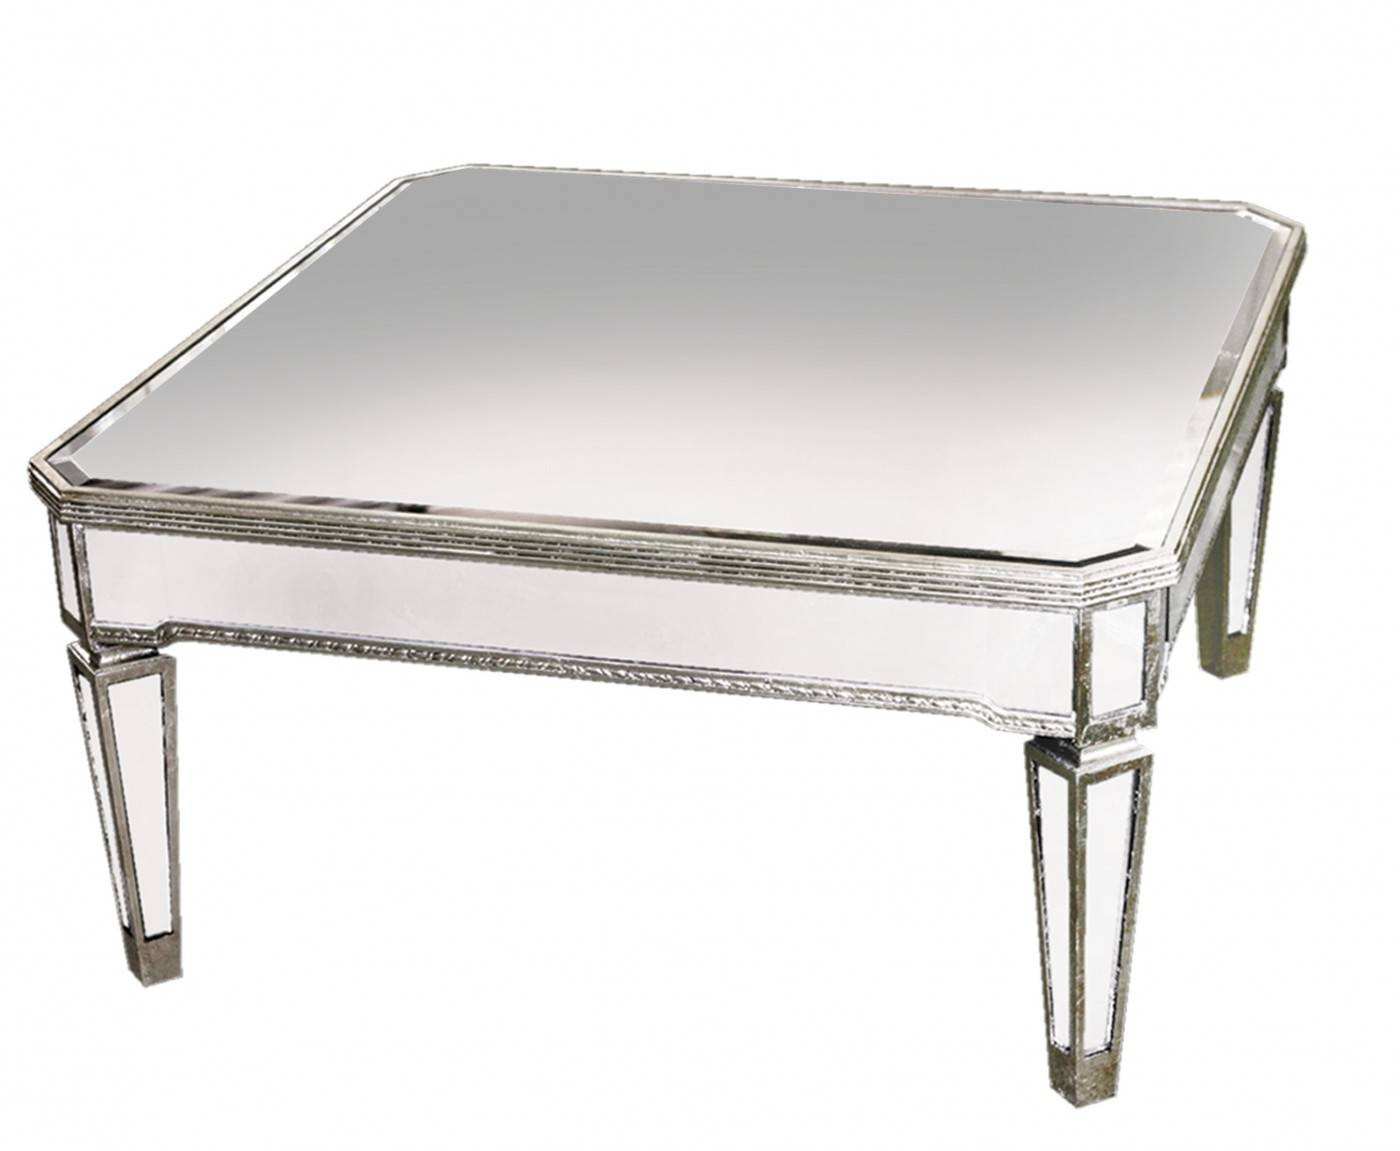 Vintage Mirrored Coffee Table | Coffee Tables Decoration inside Antique Mirrored Coffee Tables (Image 28 of 30)